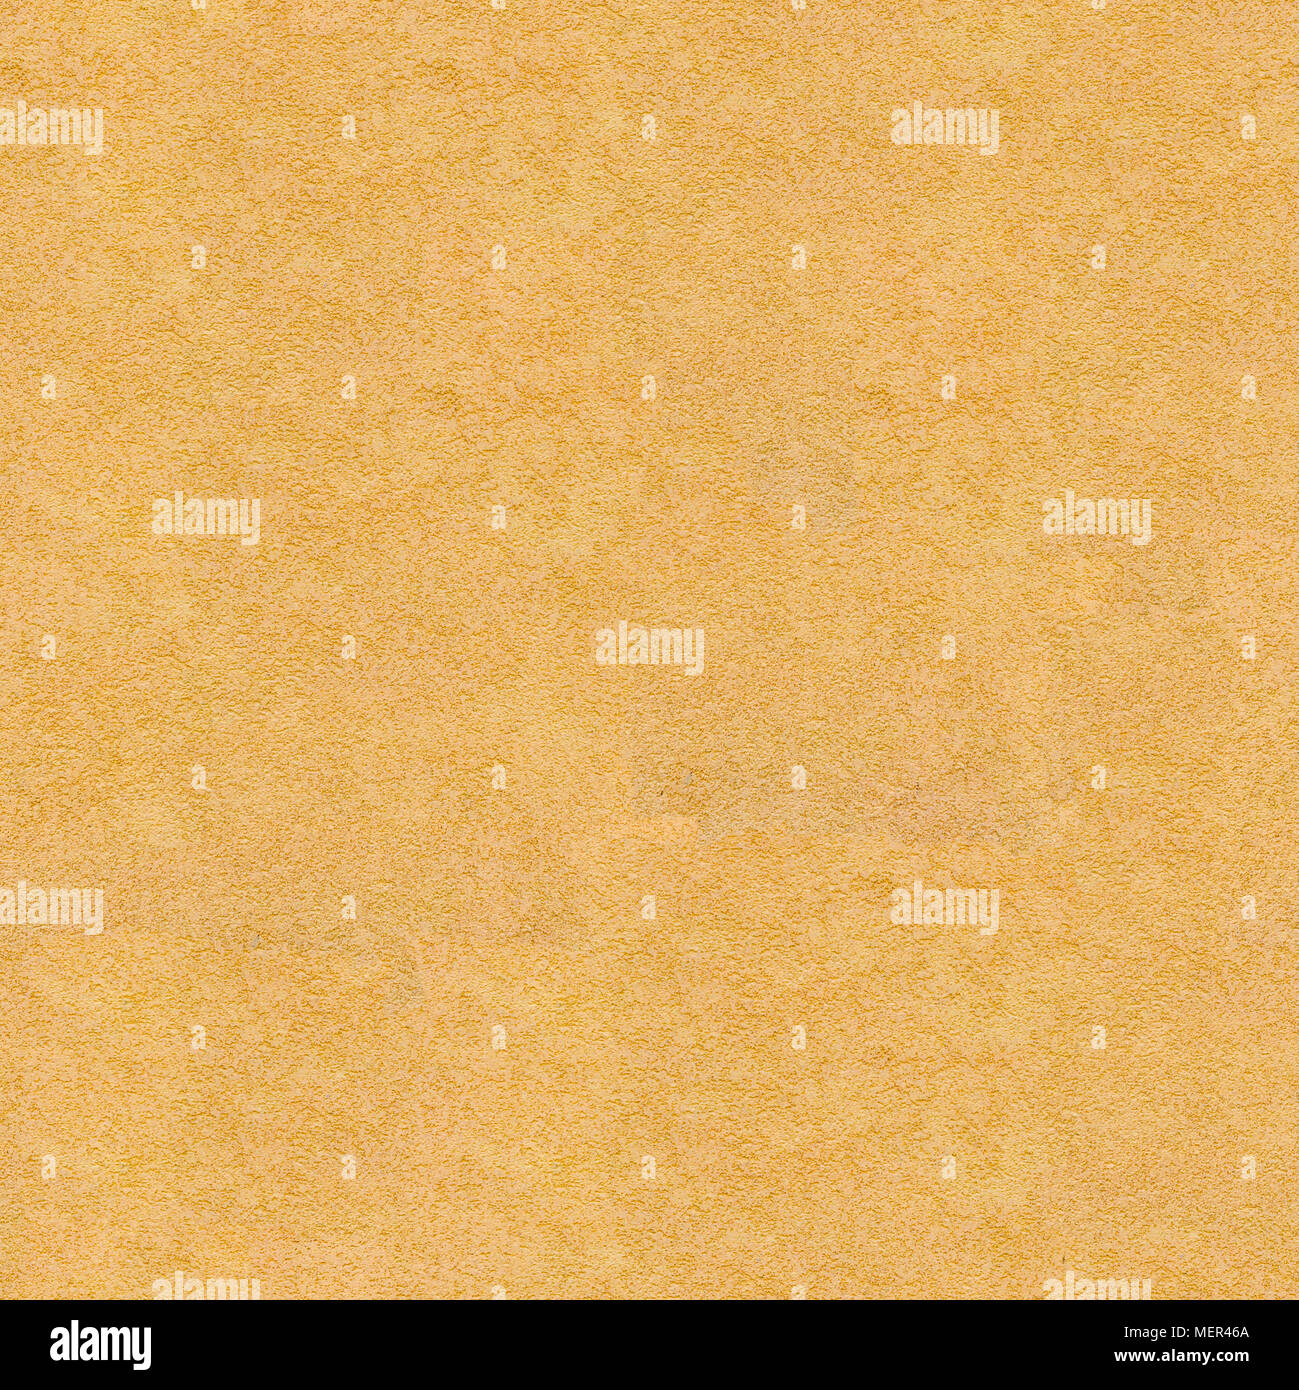 Decorative Plaster. Seamless Tileable Texture Stock Photo: 181217074 ...